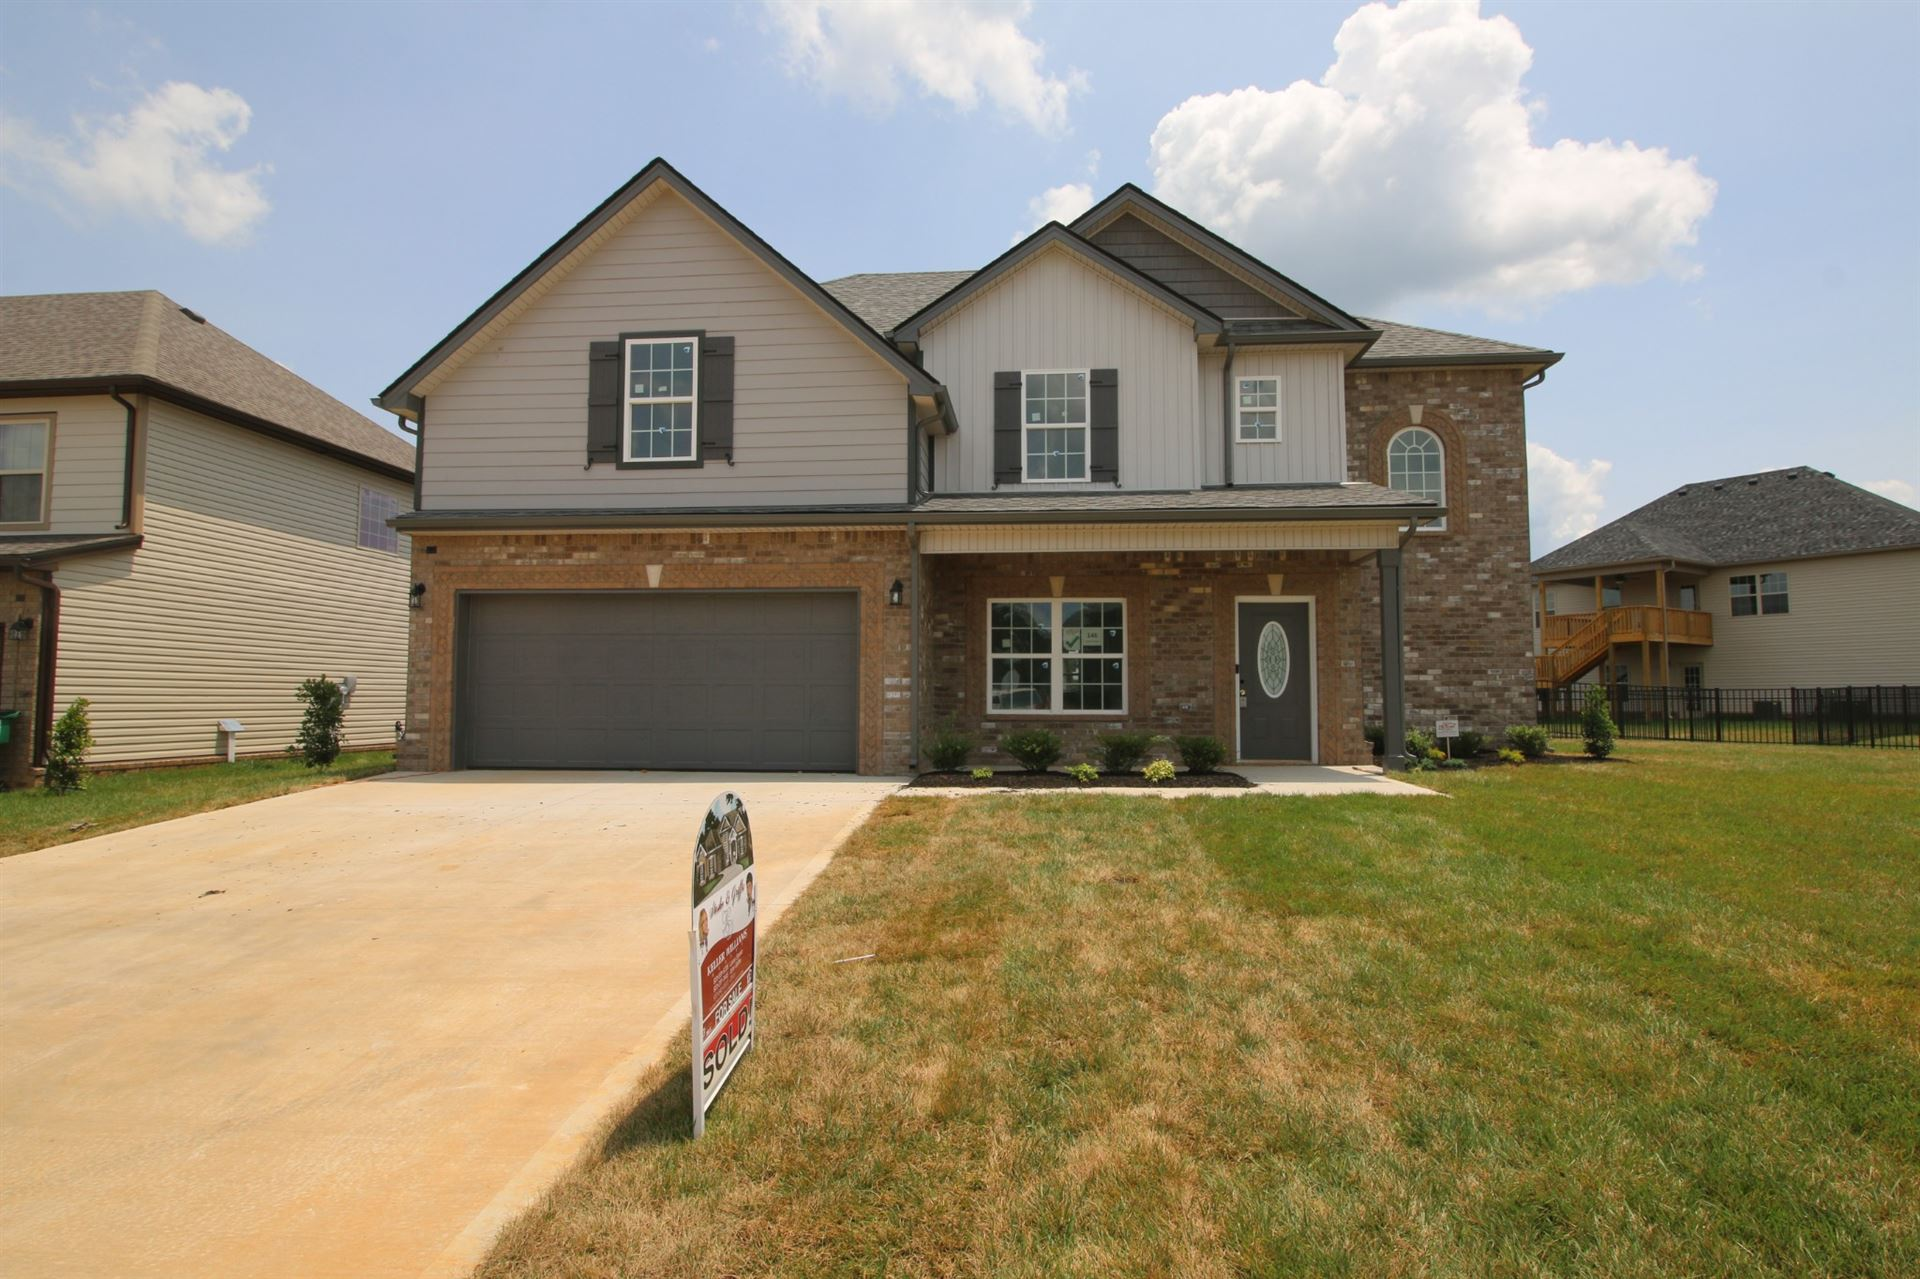 146 Charleston Oaks, Clarksville, TN 37042 - MLS#: 2221749